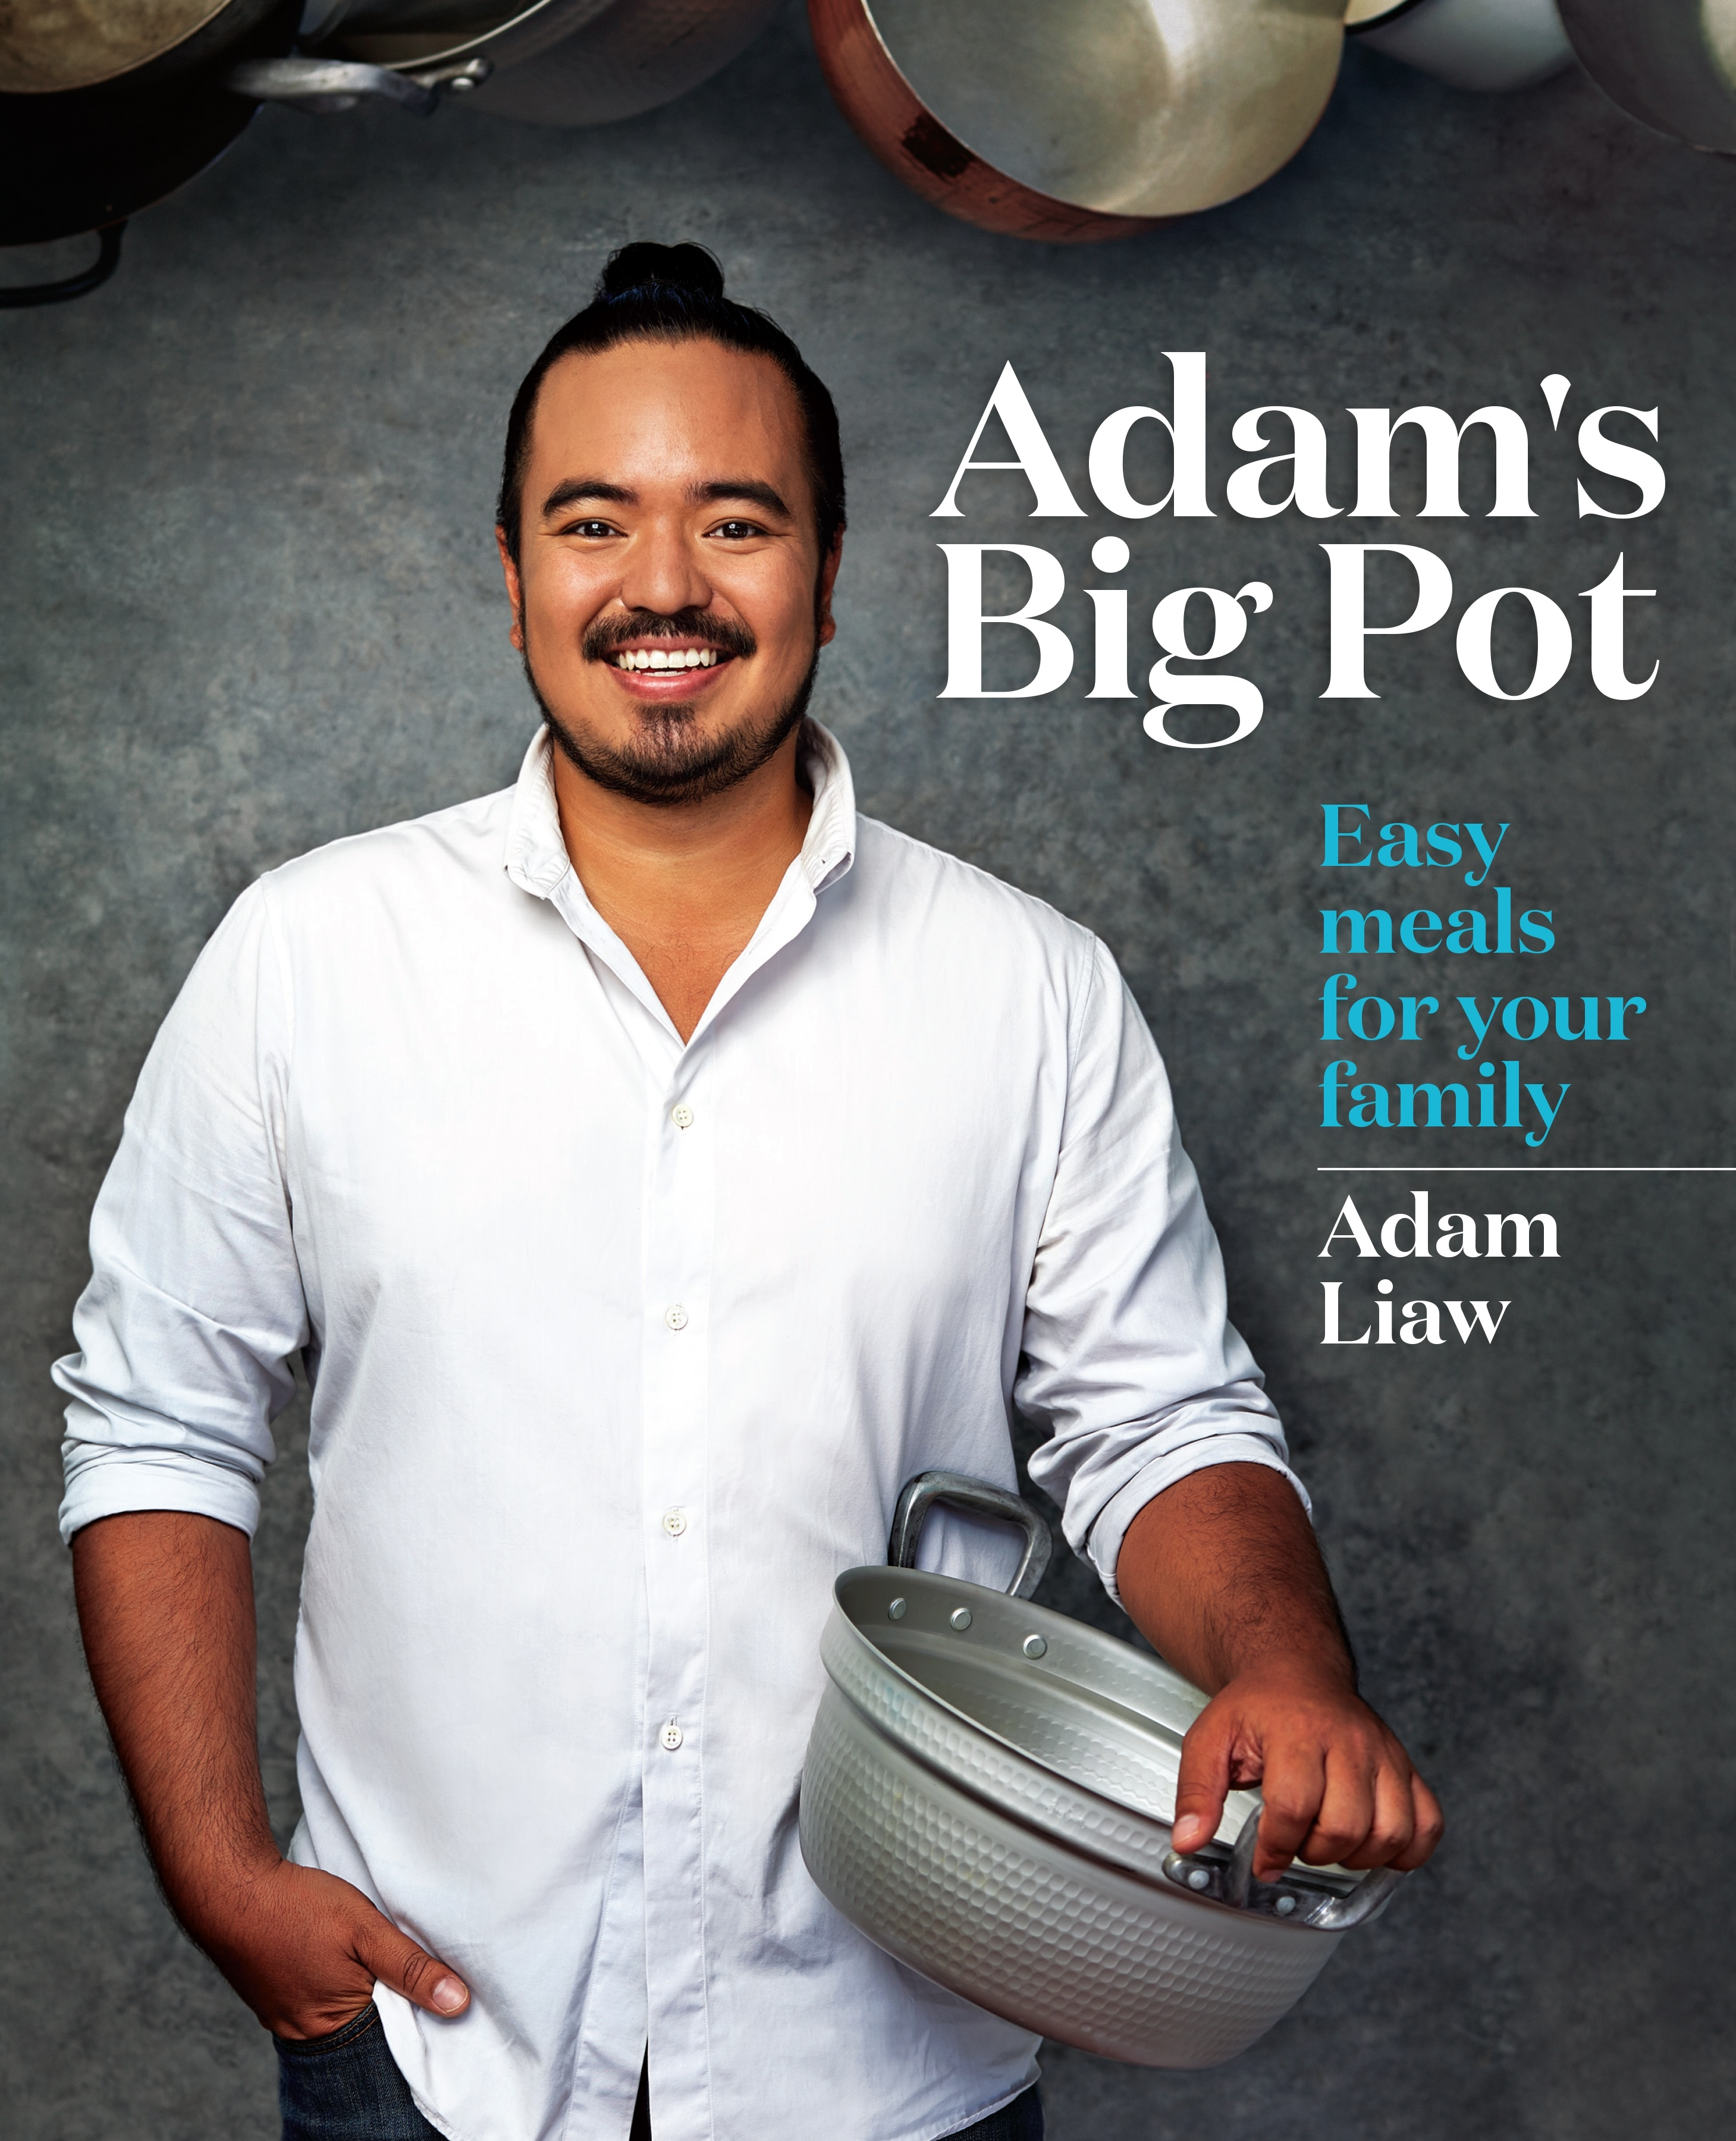 Adam's Big Pot: Easy meals for your family by Adam Liaw, ISBN: 9780733630699